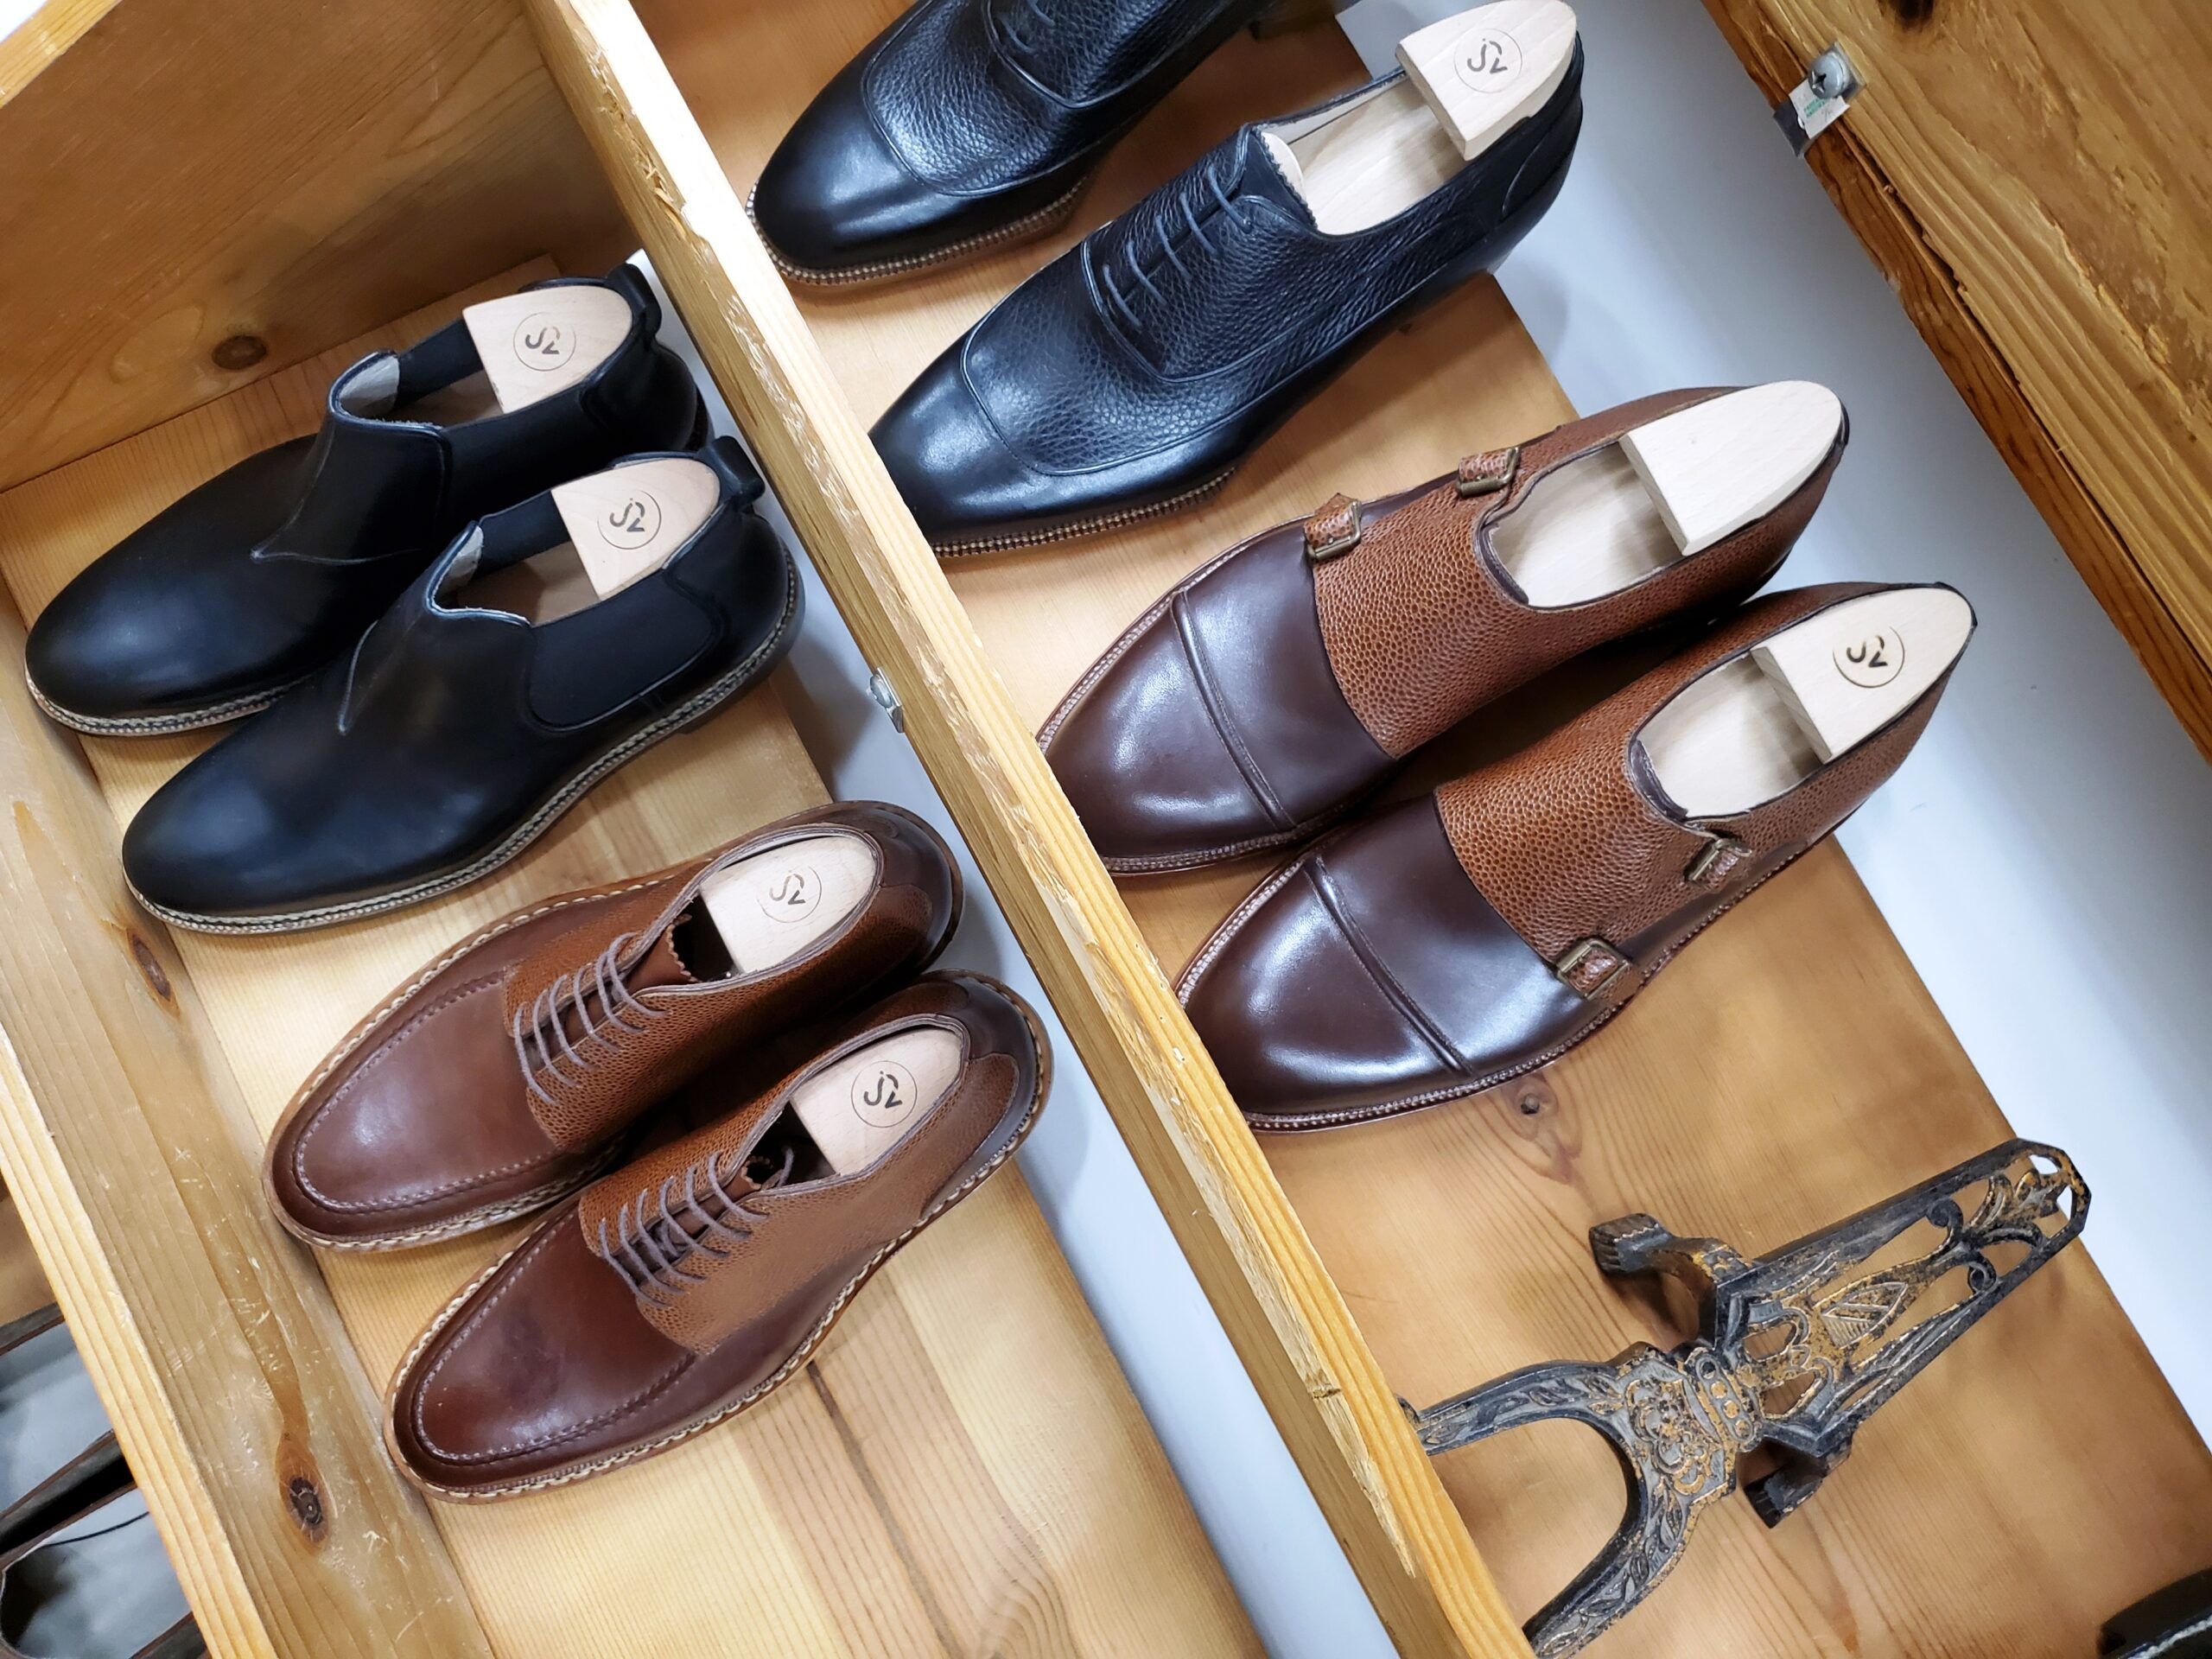 a shelf of bespoke shoes by amy slosky